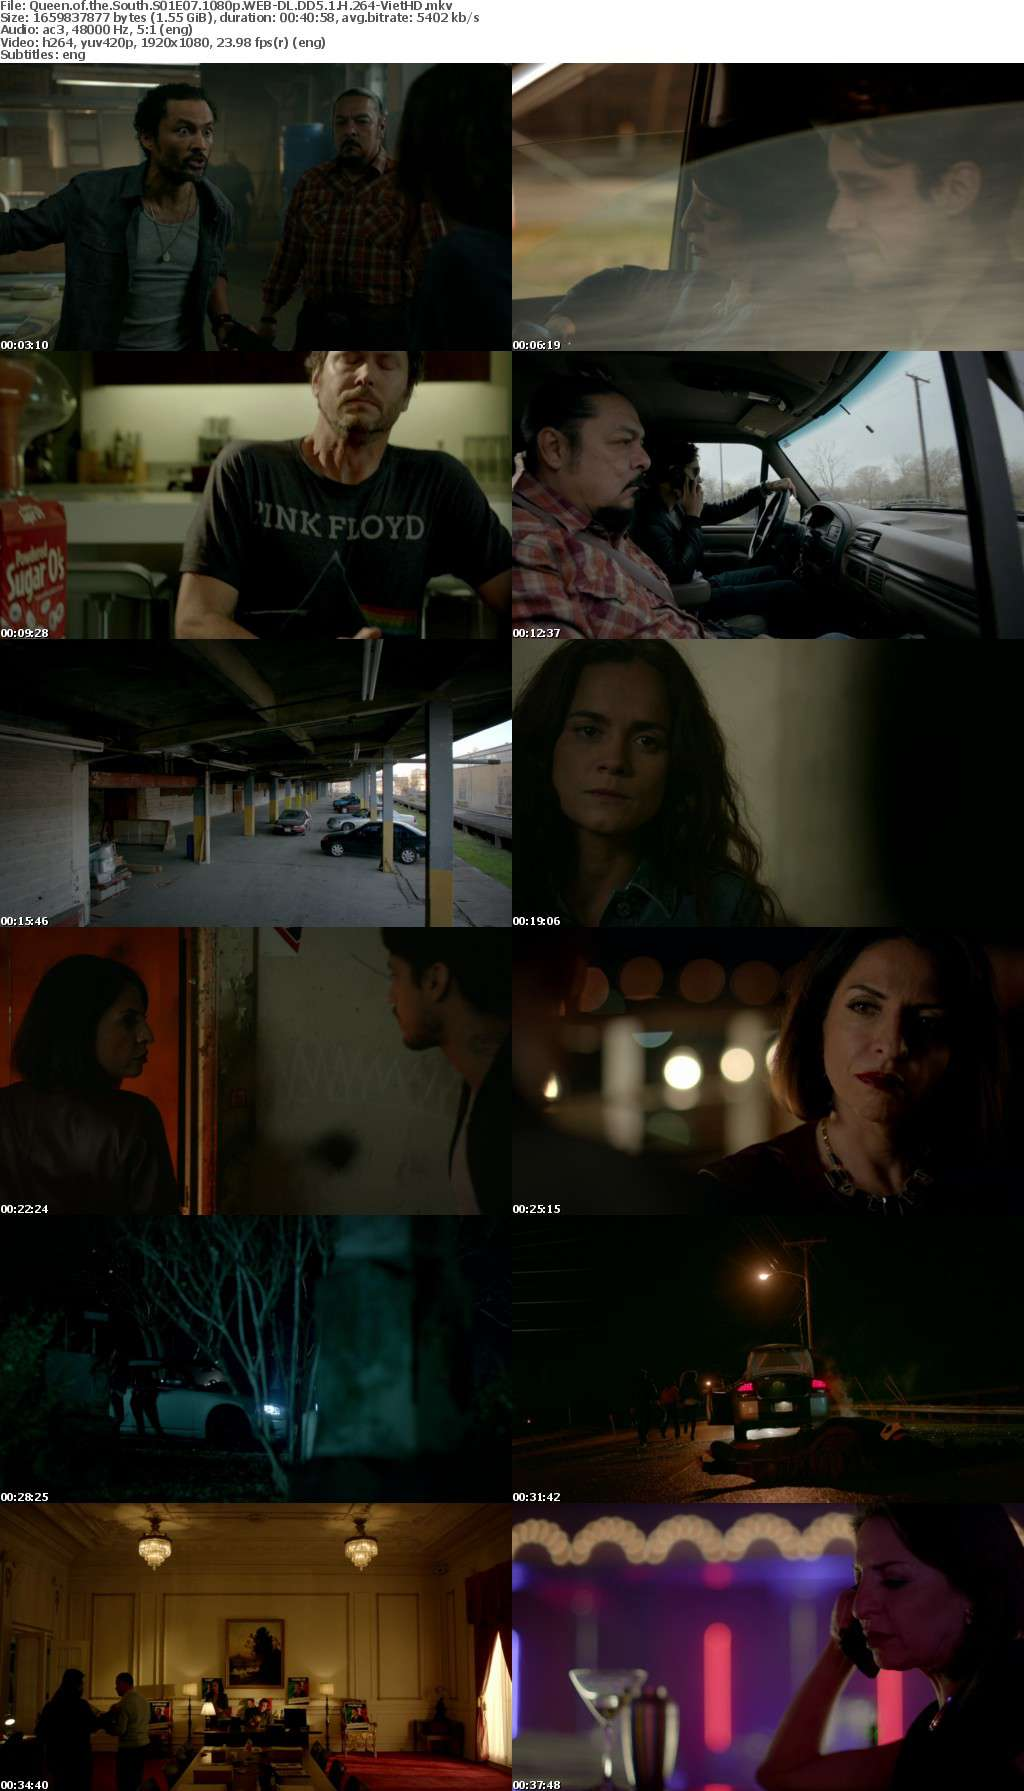 Queen of the South S01 1080p WEB-DL DD5 1 H 264-VietHD